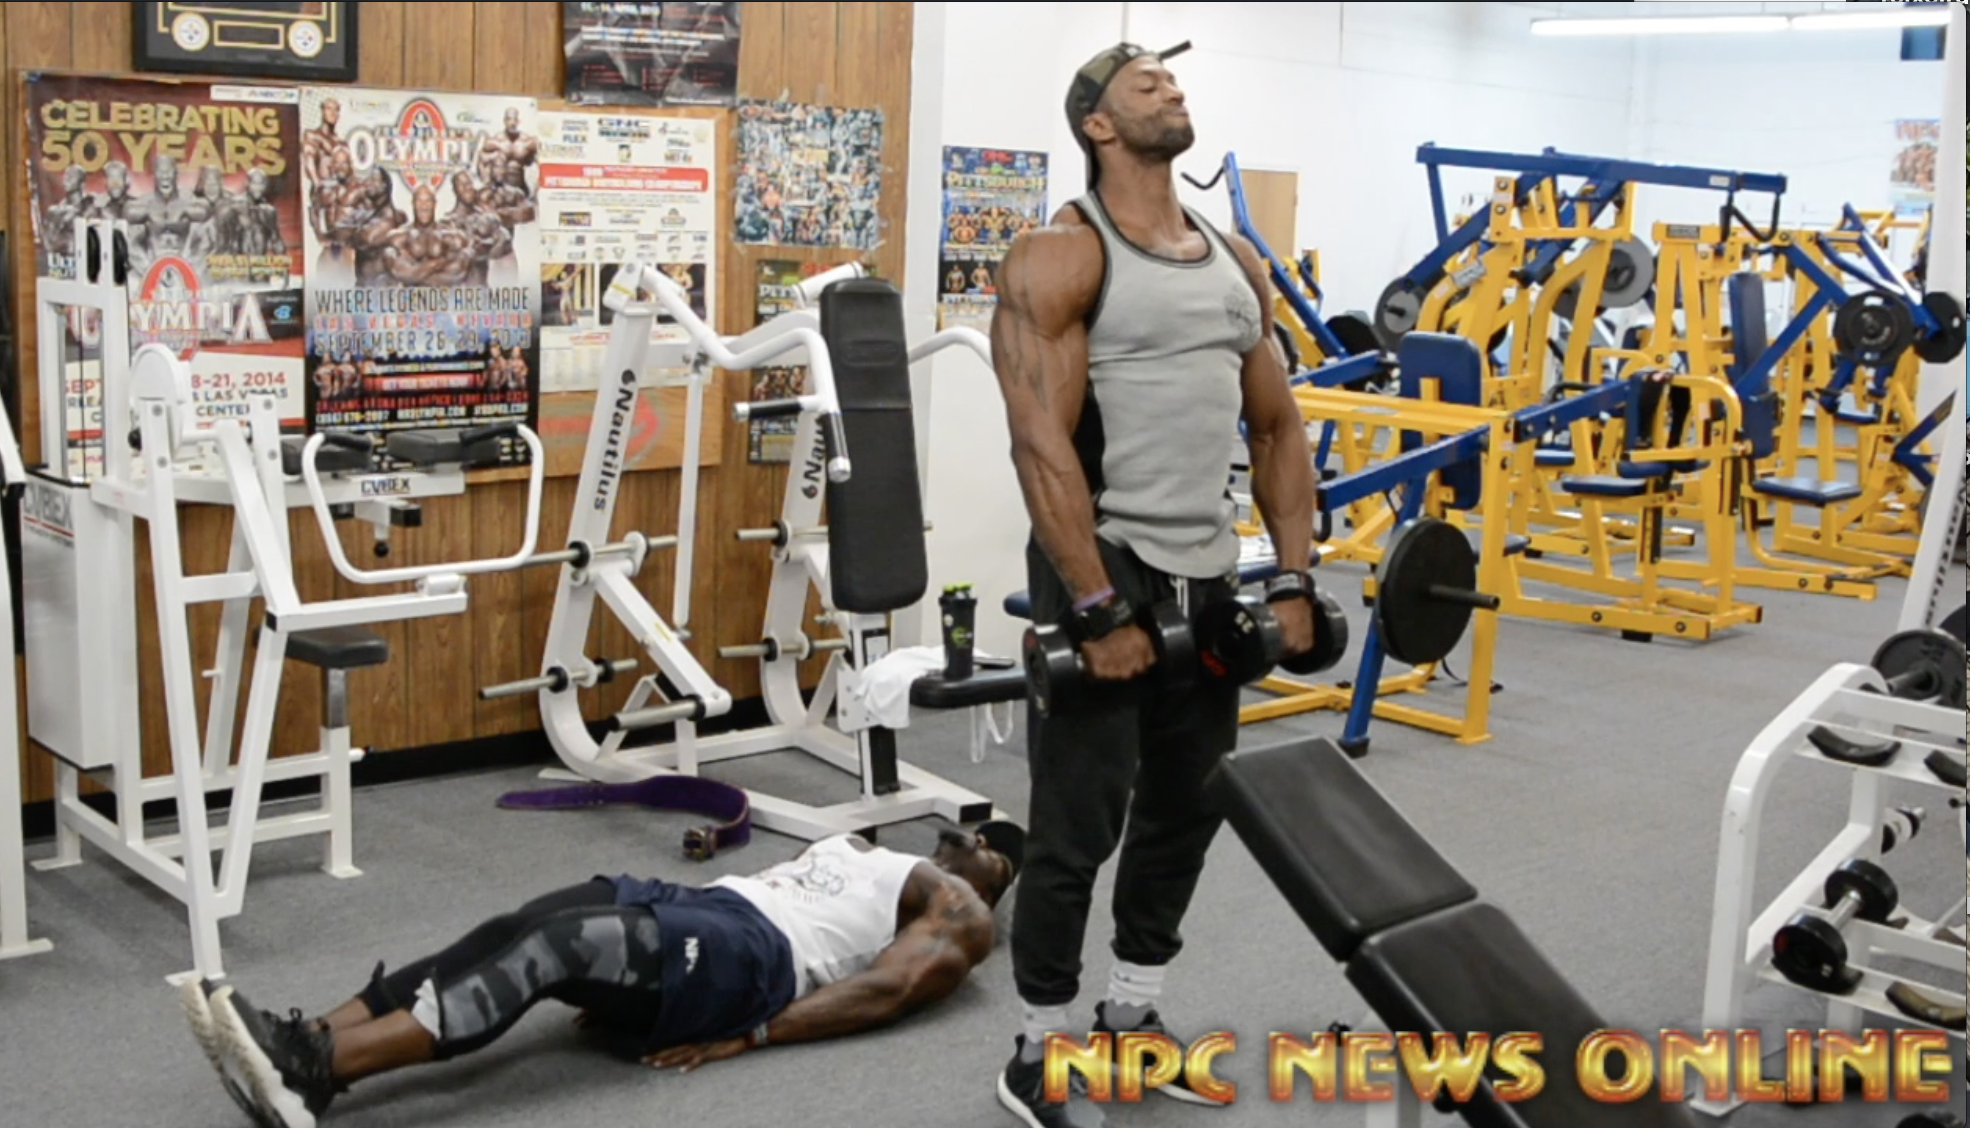 Road To the Arnold 2018 Shoulder Workout: IFBB Men's Physique Pro's Ray Edmonds, George Brown & NPC Competitor Aladino DInardo